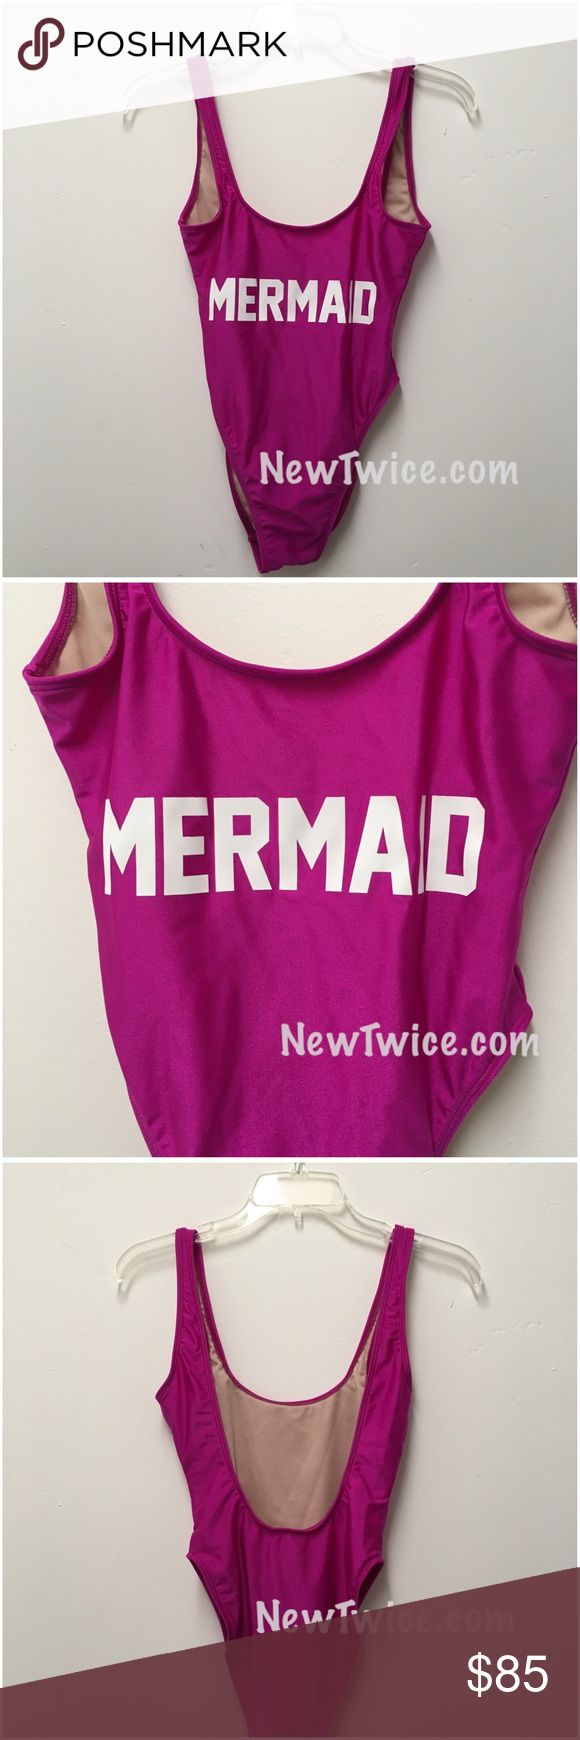 """New! Private Party mermaid purple one piece swim New never worn. One piece swimsuit. Size s/m reads """"mermaid"""" low cut neckline Private Party Swim One Pieces"""